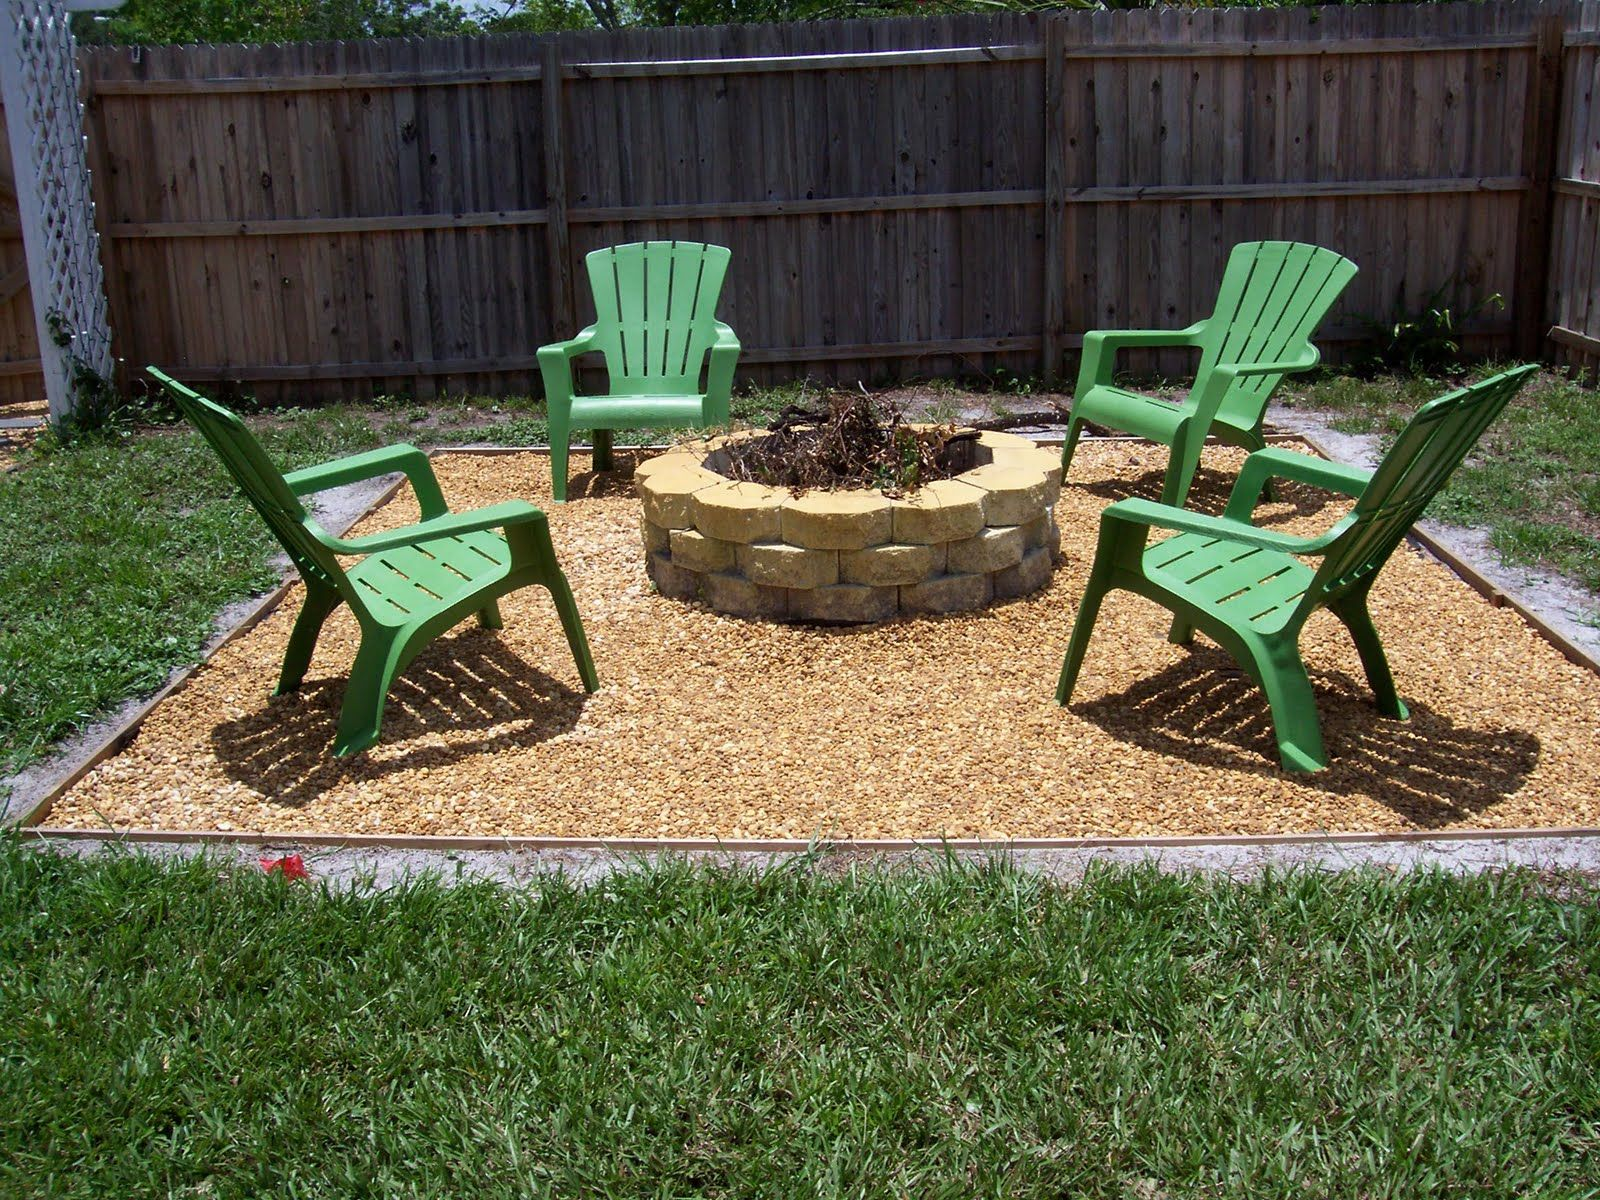 Fire Pit Design Ideas backyard fire pit landscaping ideas cheap fire pit ideas garden design garden design with fire pit Garden Design With Fire Pits Denver Cheap And Outdoor Fire Bowls Simple Home Backyard With Backyards